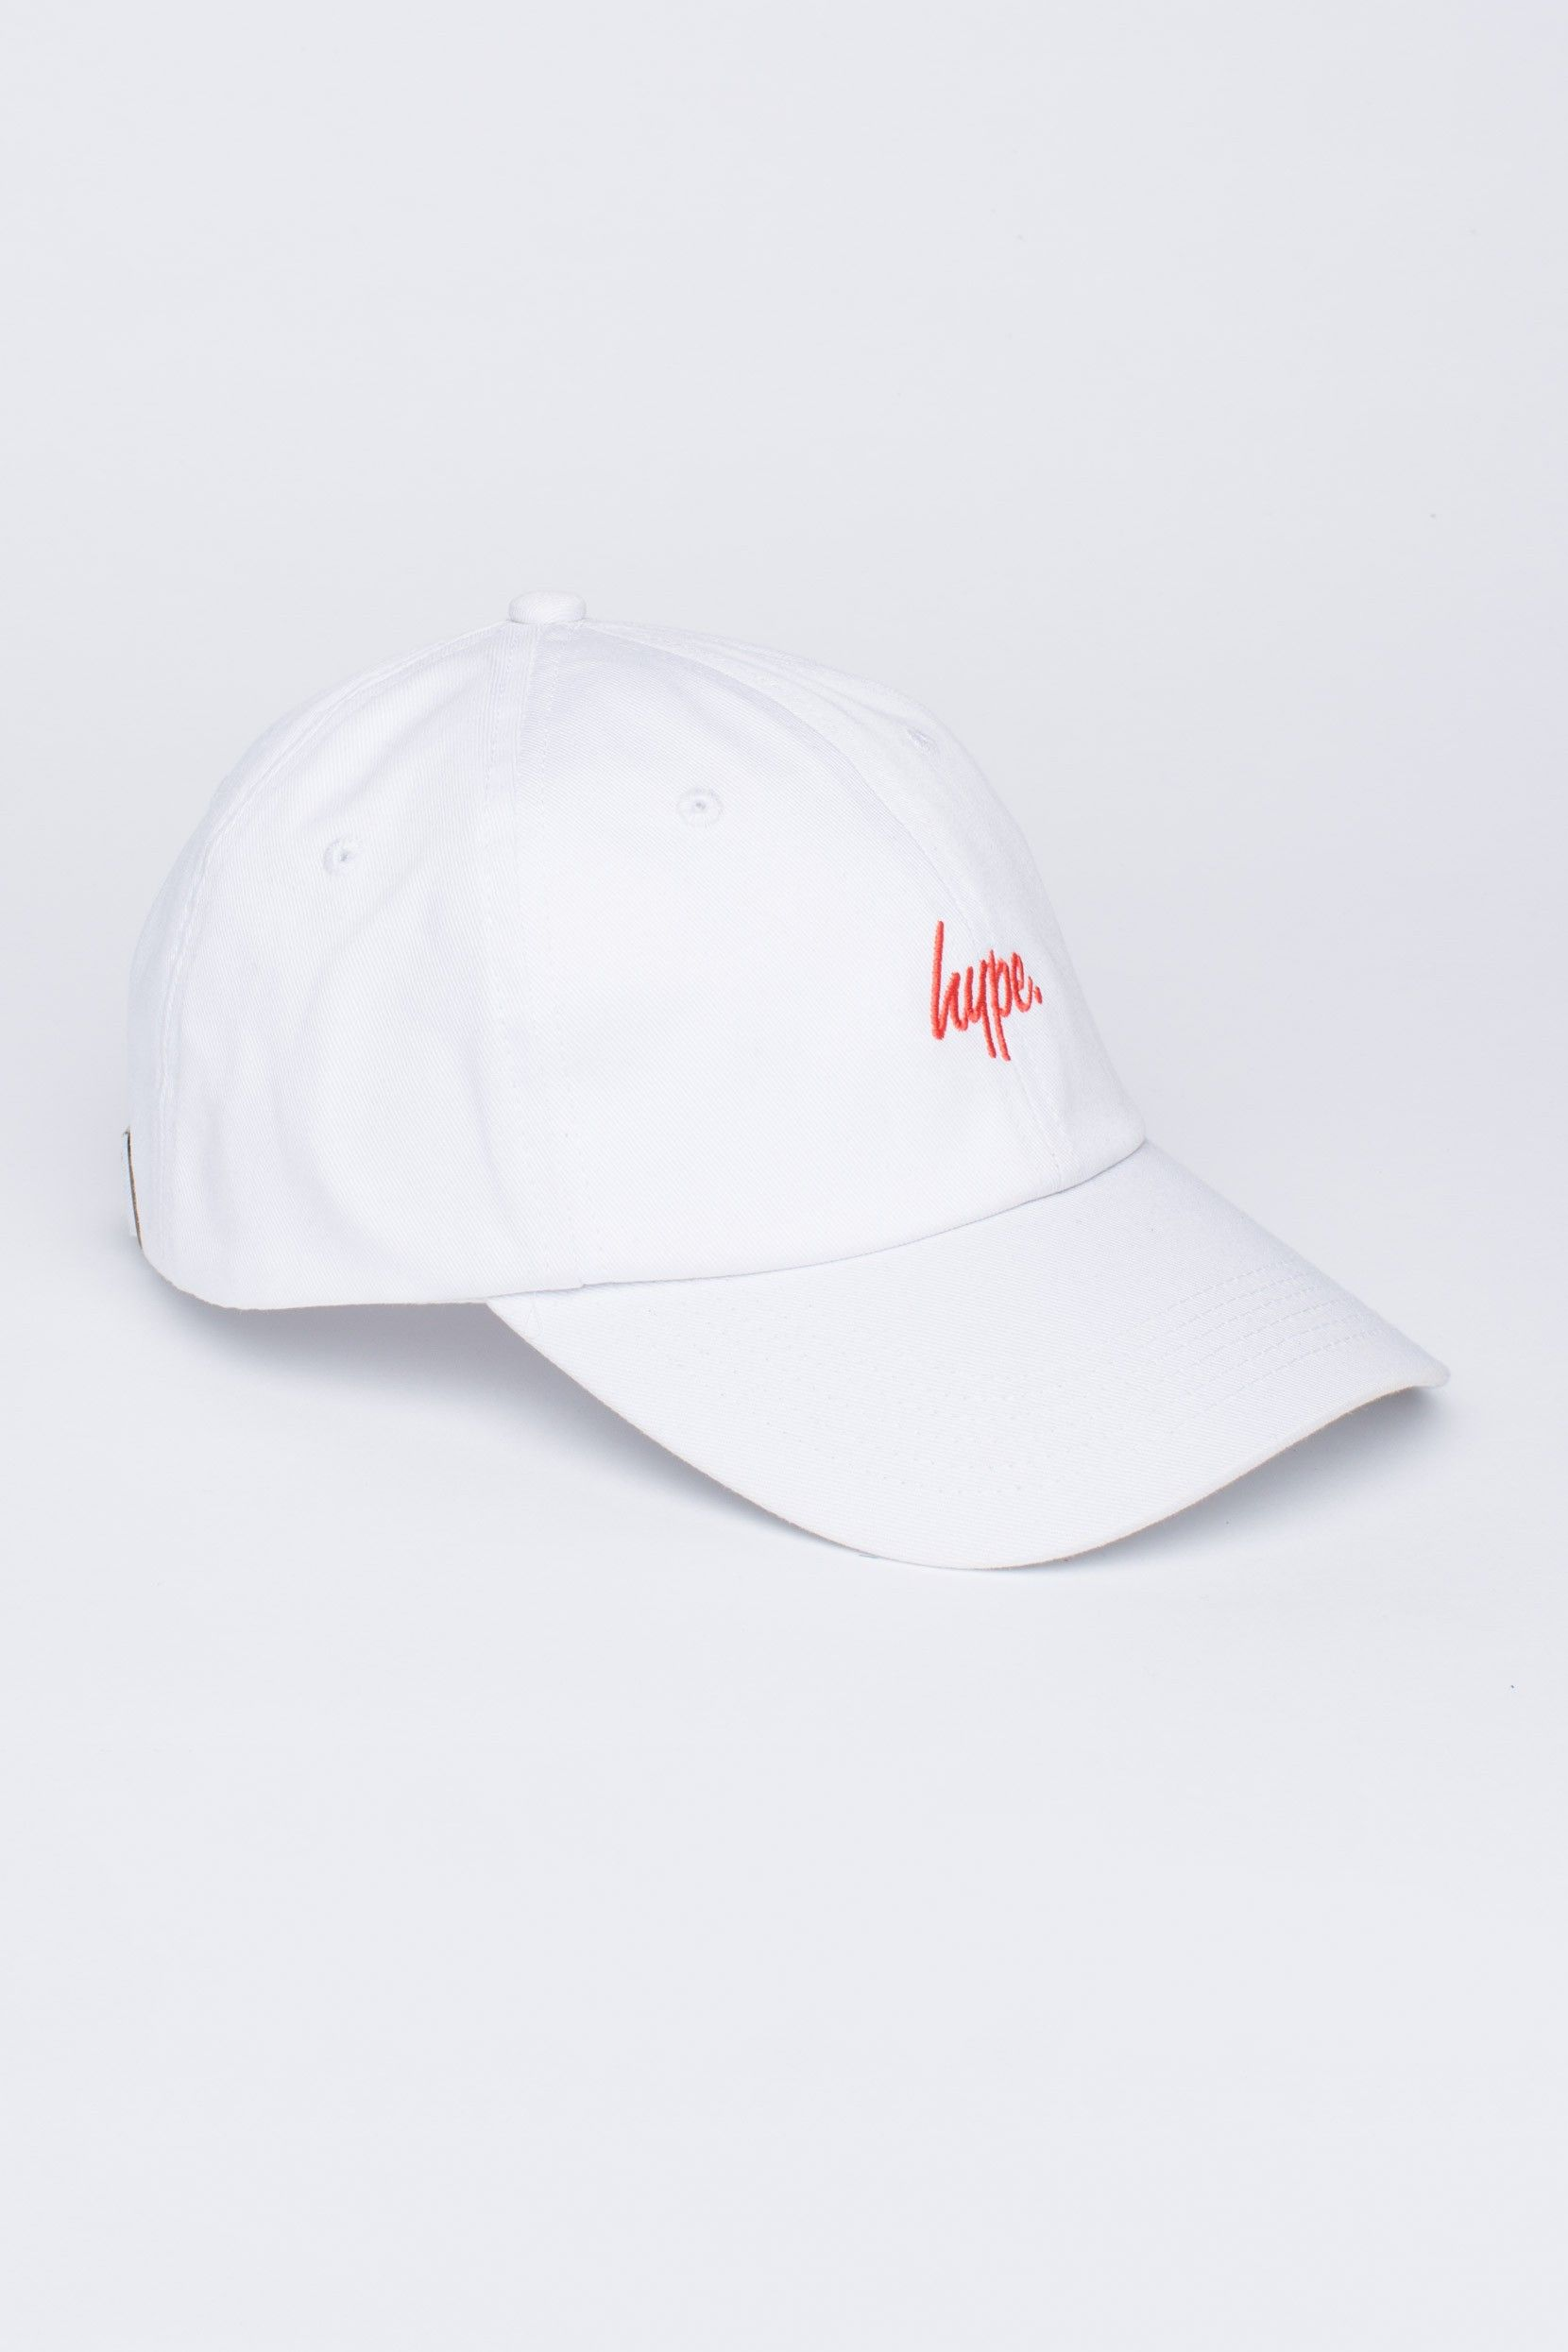 3db0083b2 HYPE WHITE & RED DAD CAP | HYPE 2016 | Dad caps, Hype store, Hype ...